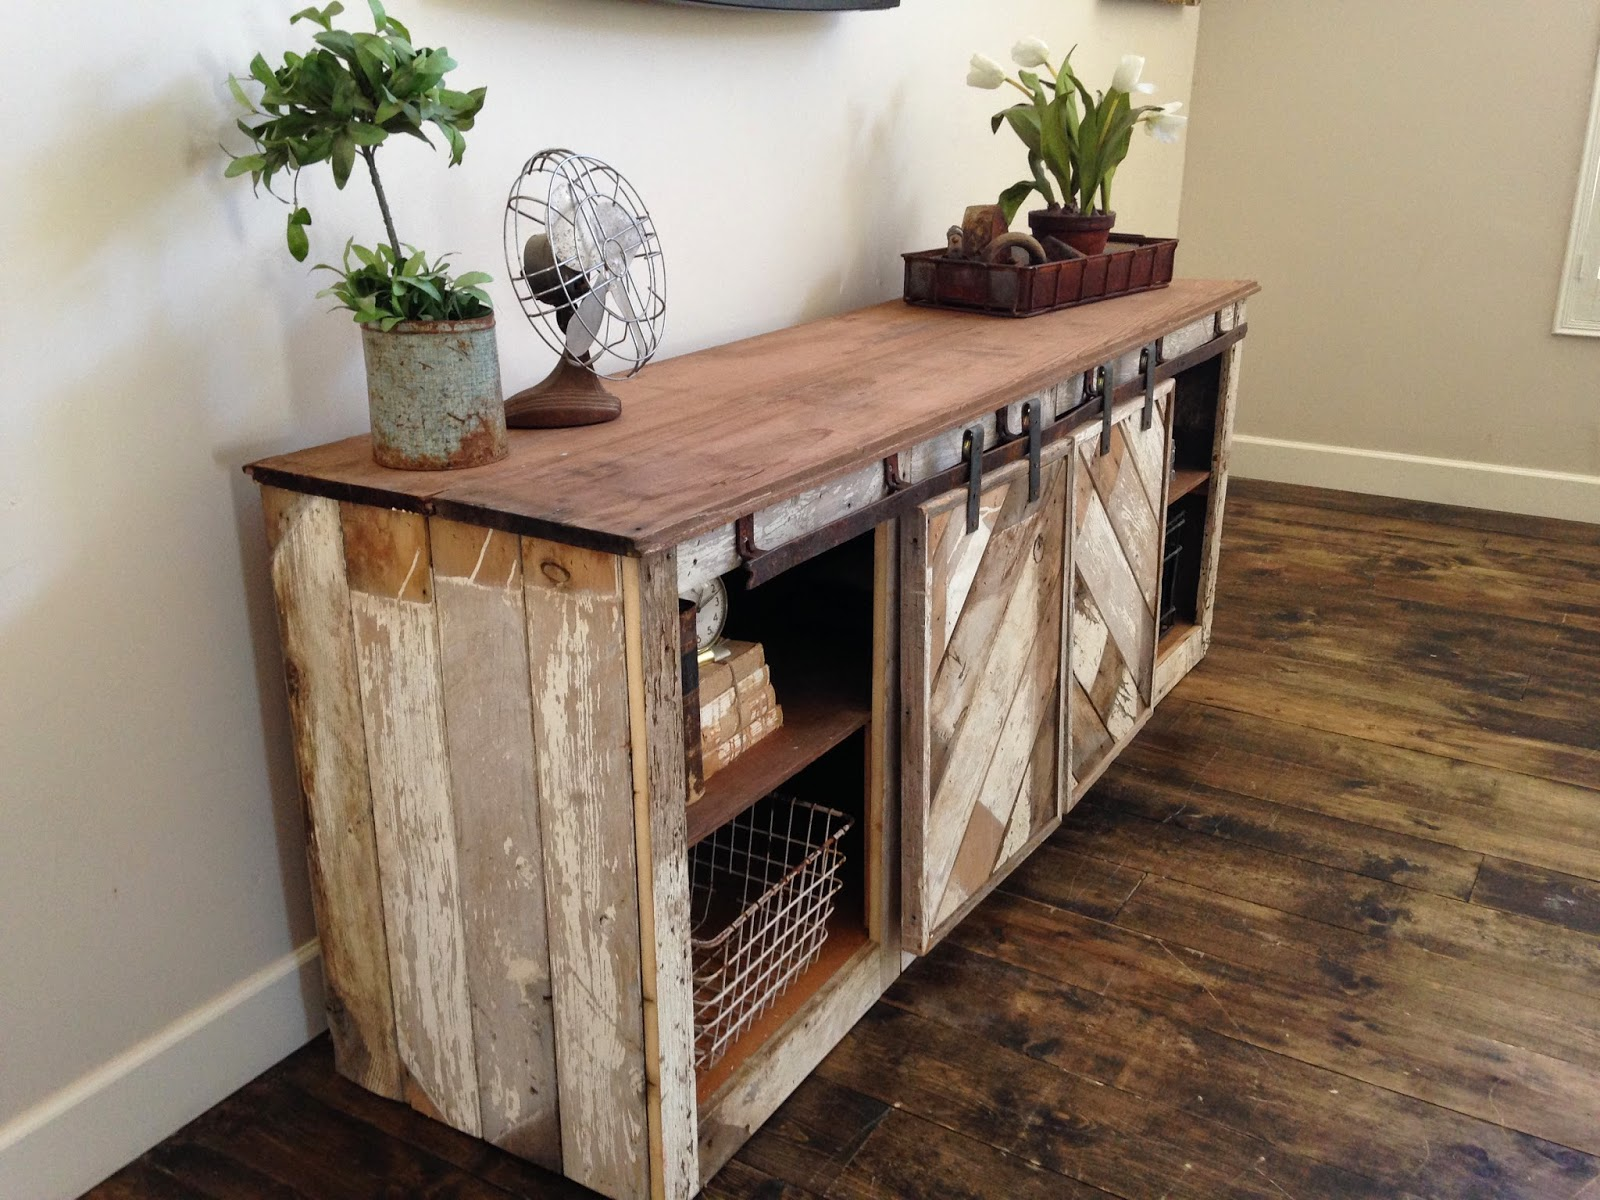 ana white grandy sliding door console diy projects accent table with barn rustic distressed furniture allen cocktail patio outdoor ikea toy storage unit meyda lily lamp ashley